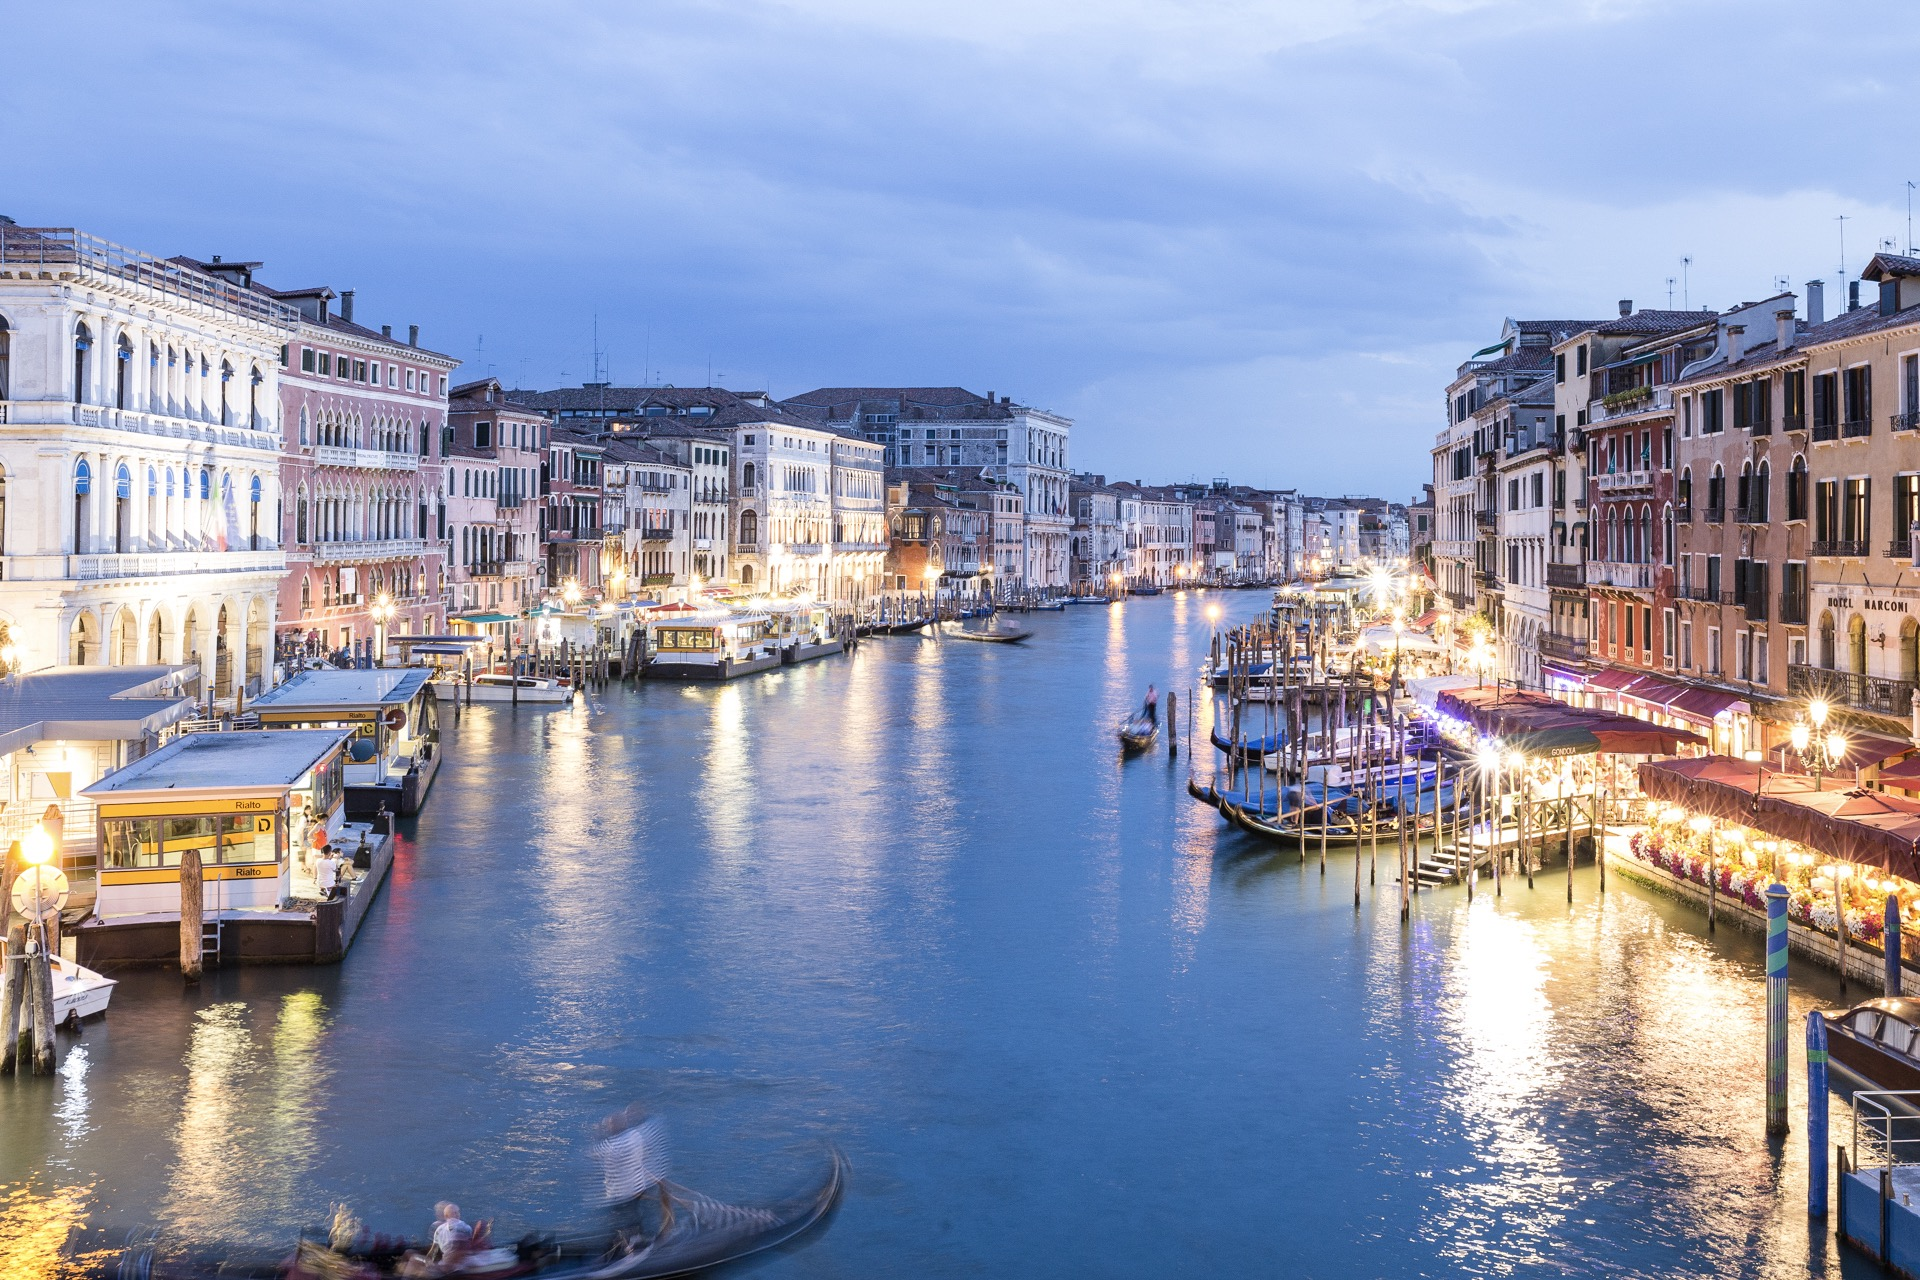 A view from on top of the Rialto Bridge during blue hour